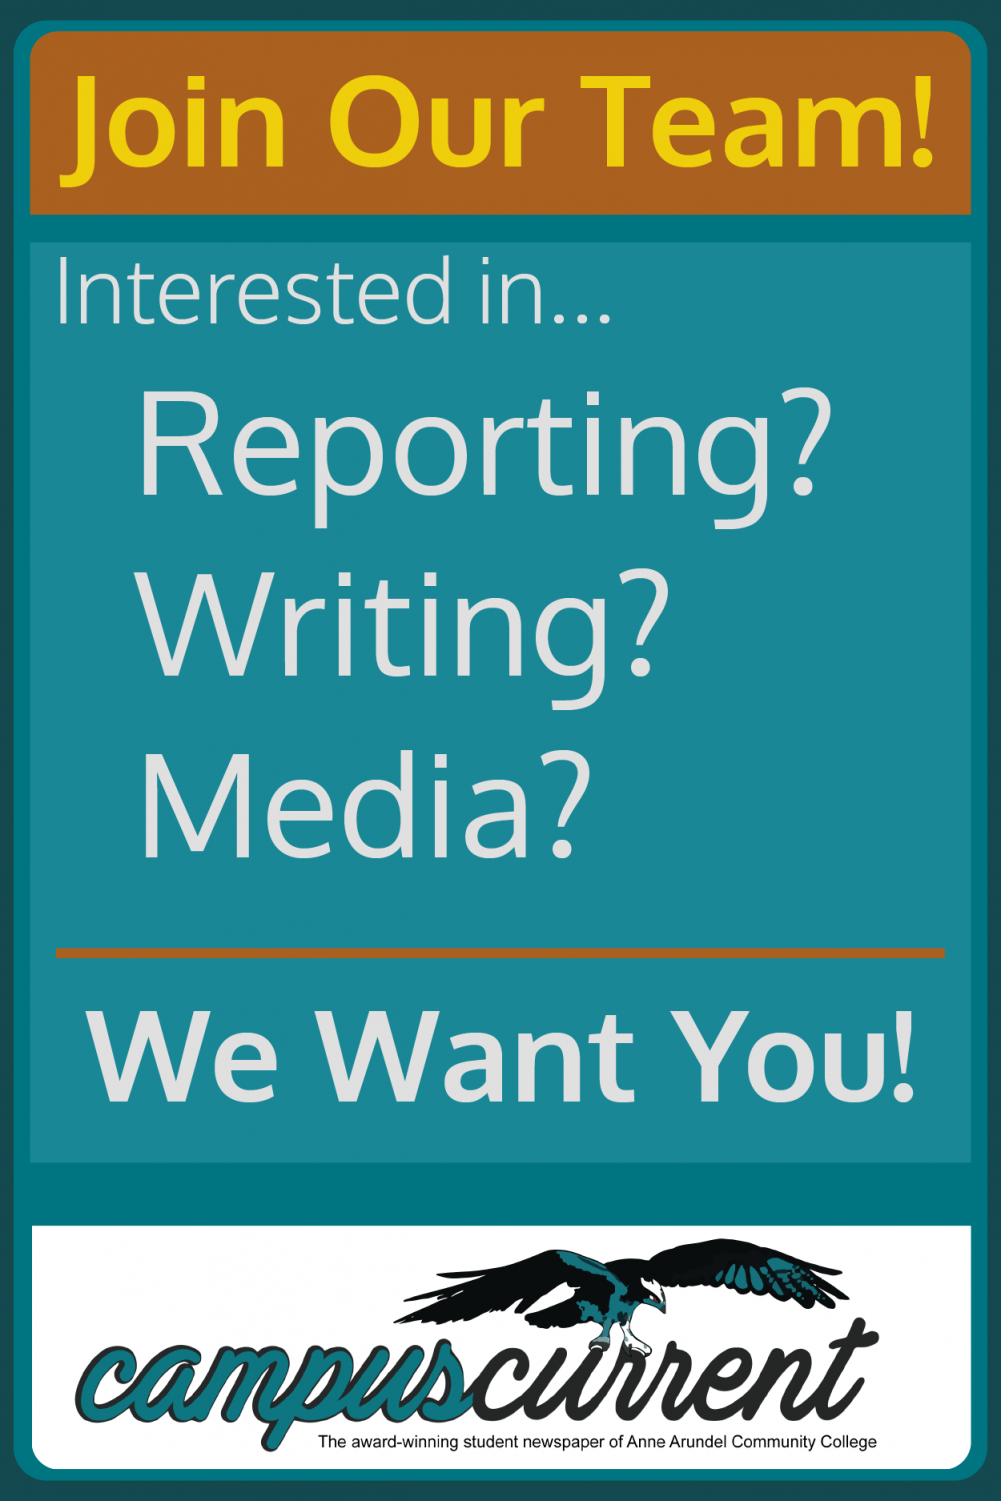 Join Our Team! Interested in... Reporting? Writing? Media? We Want You!